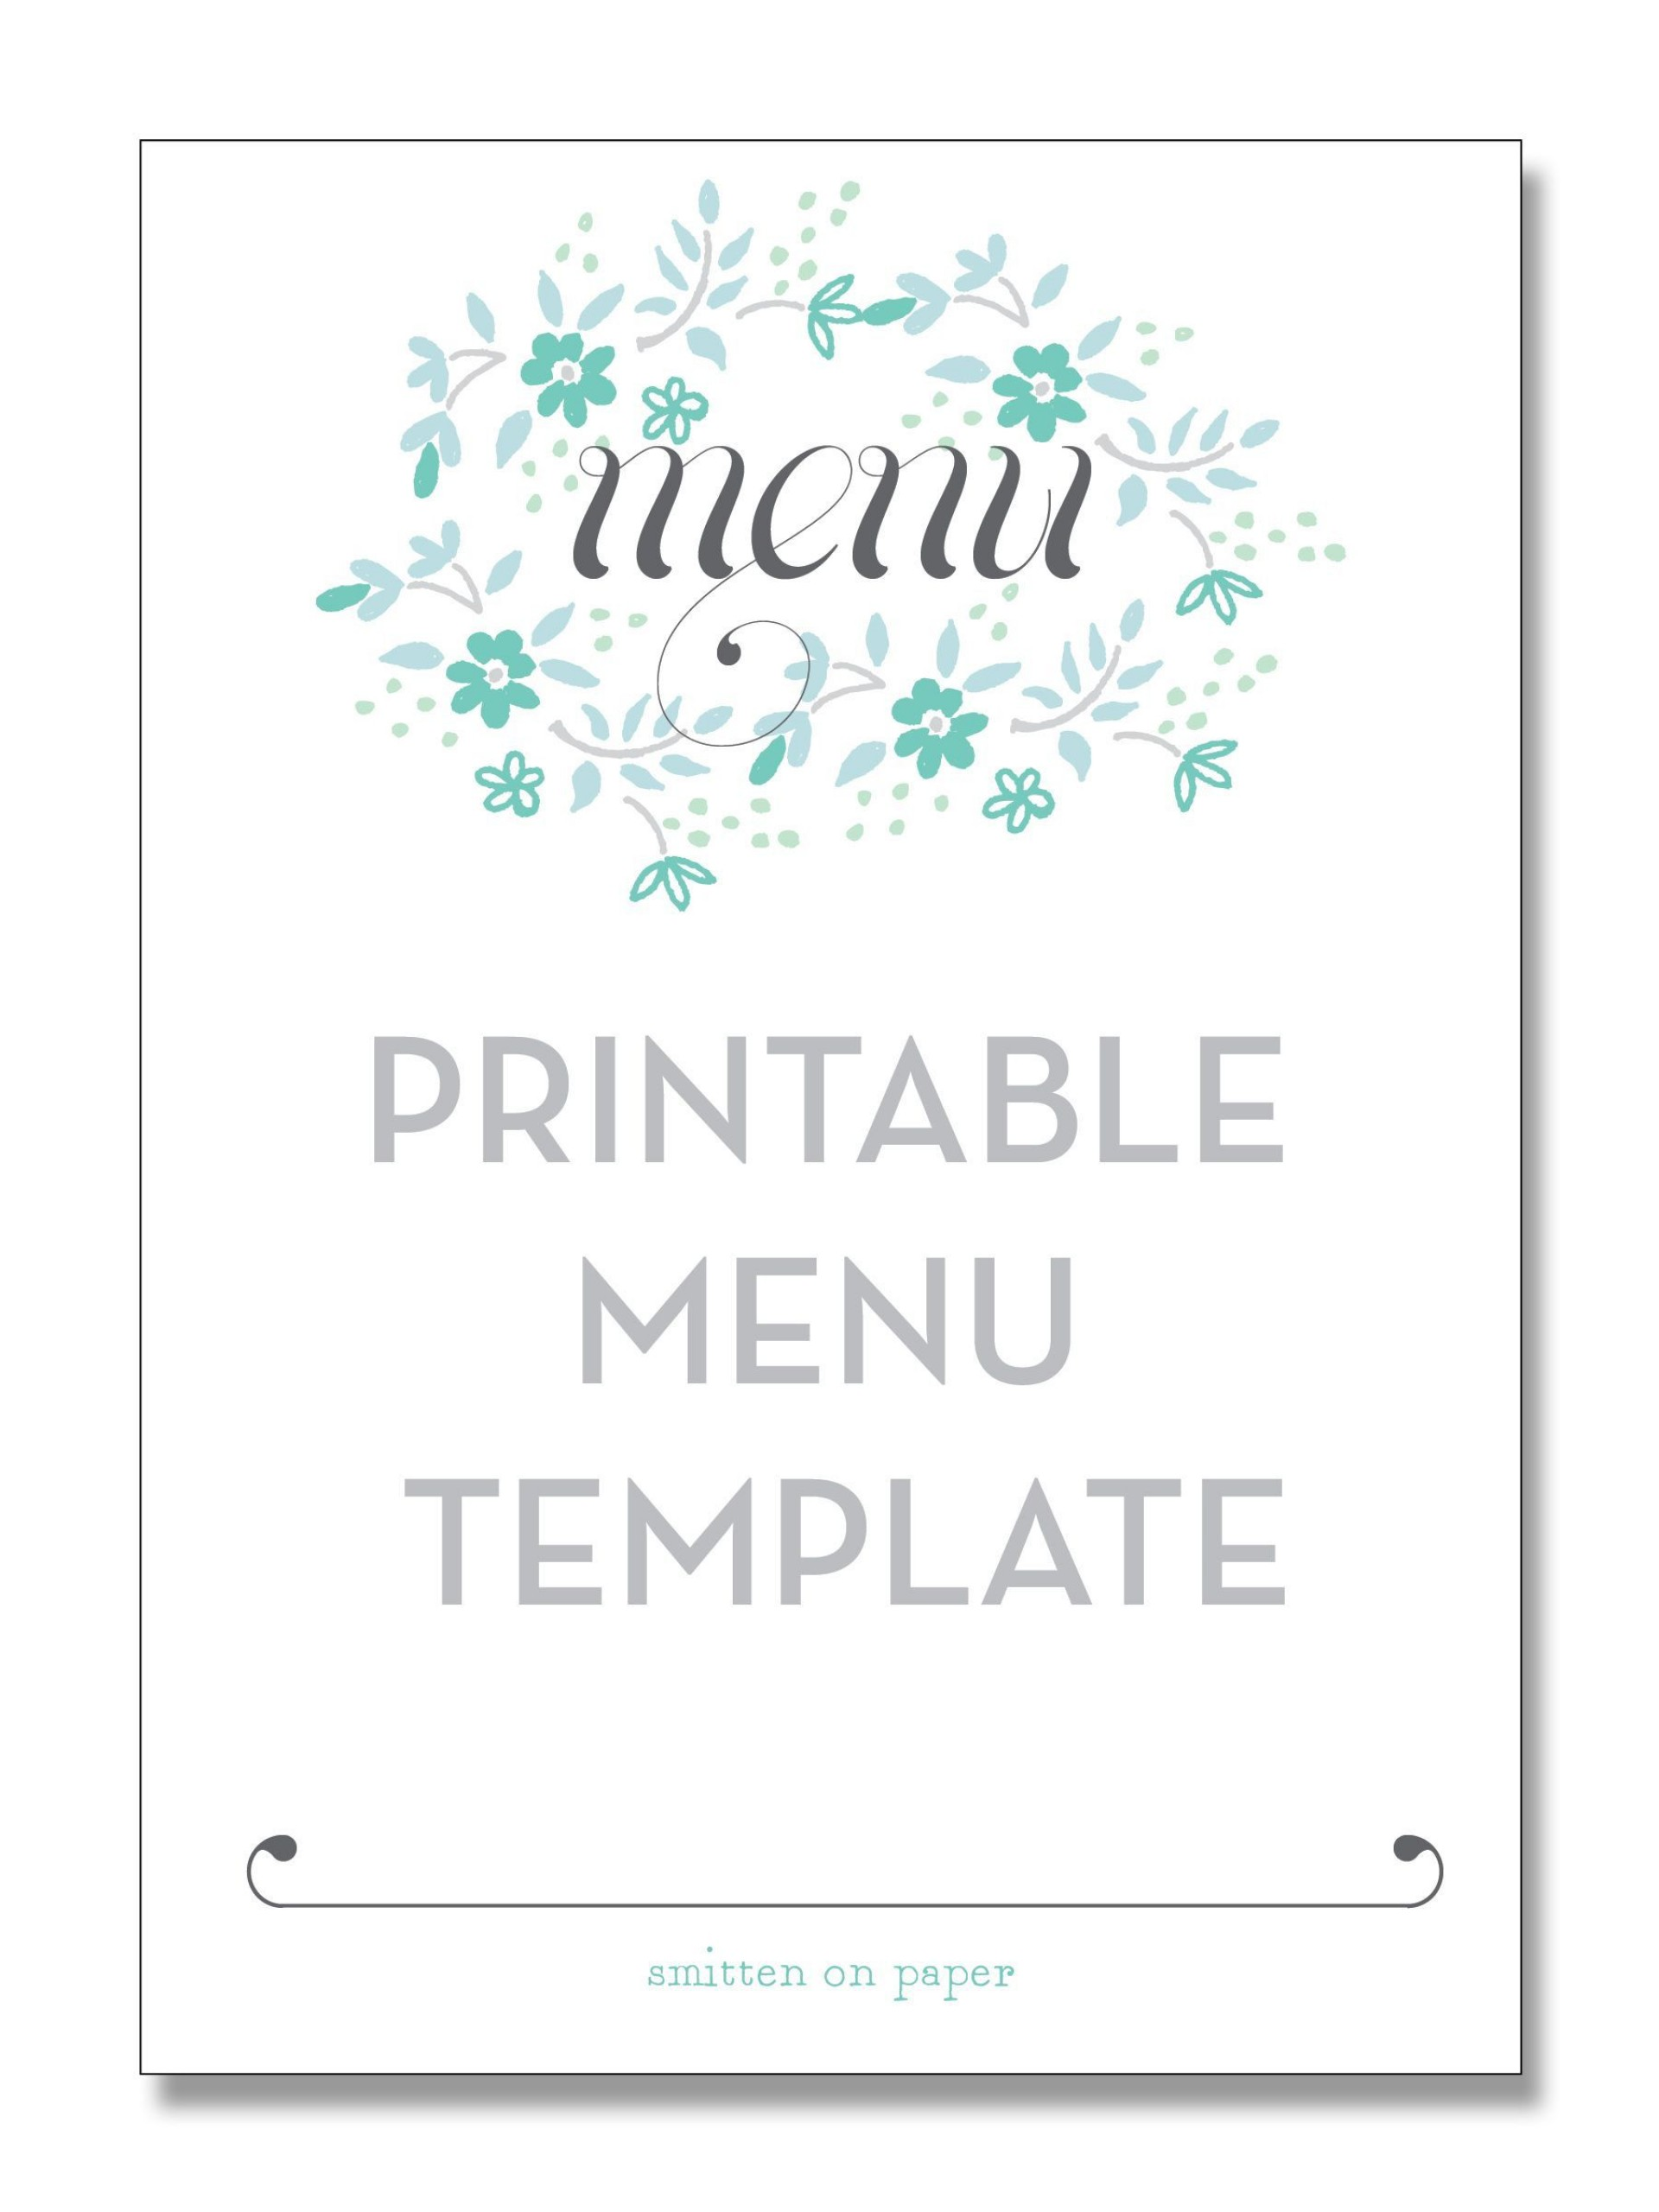 004 Phenomenal Free Printable Menu Template High Resolution  For Dinner Party Family1920